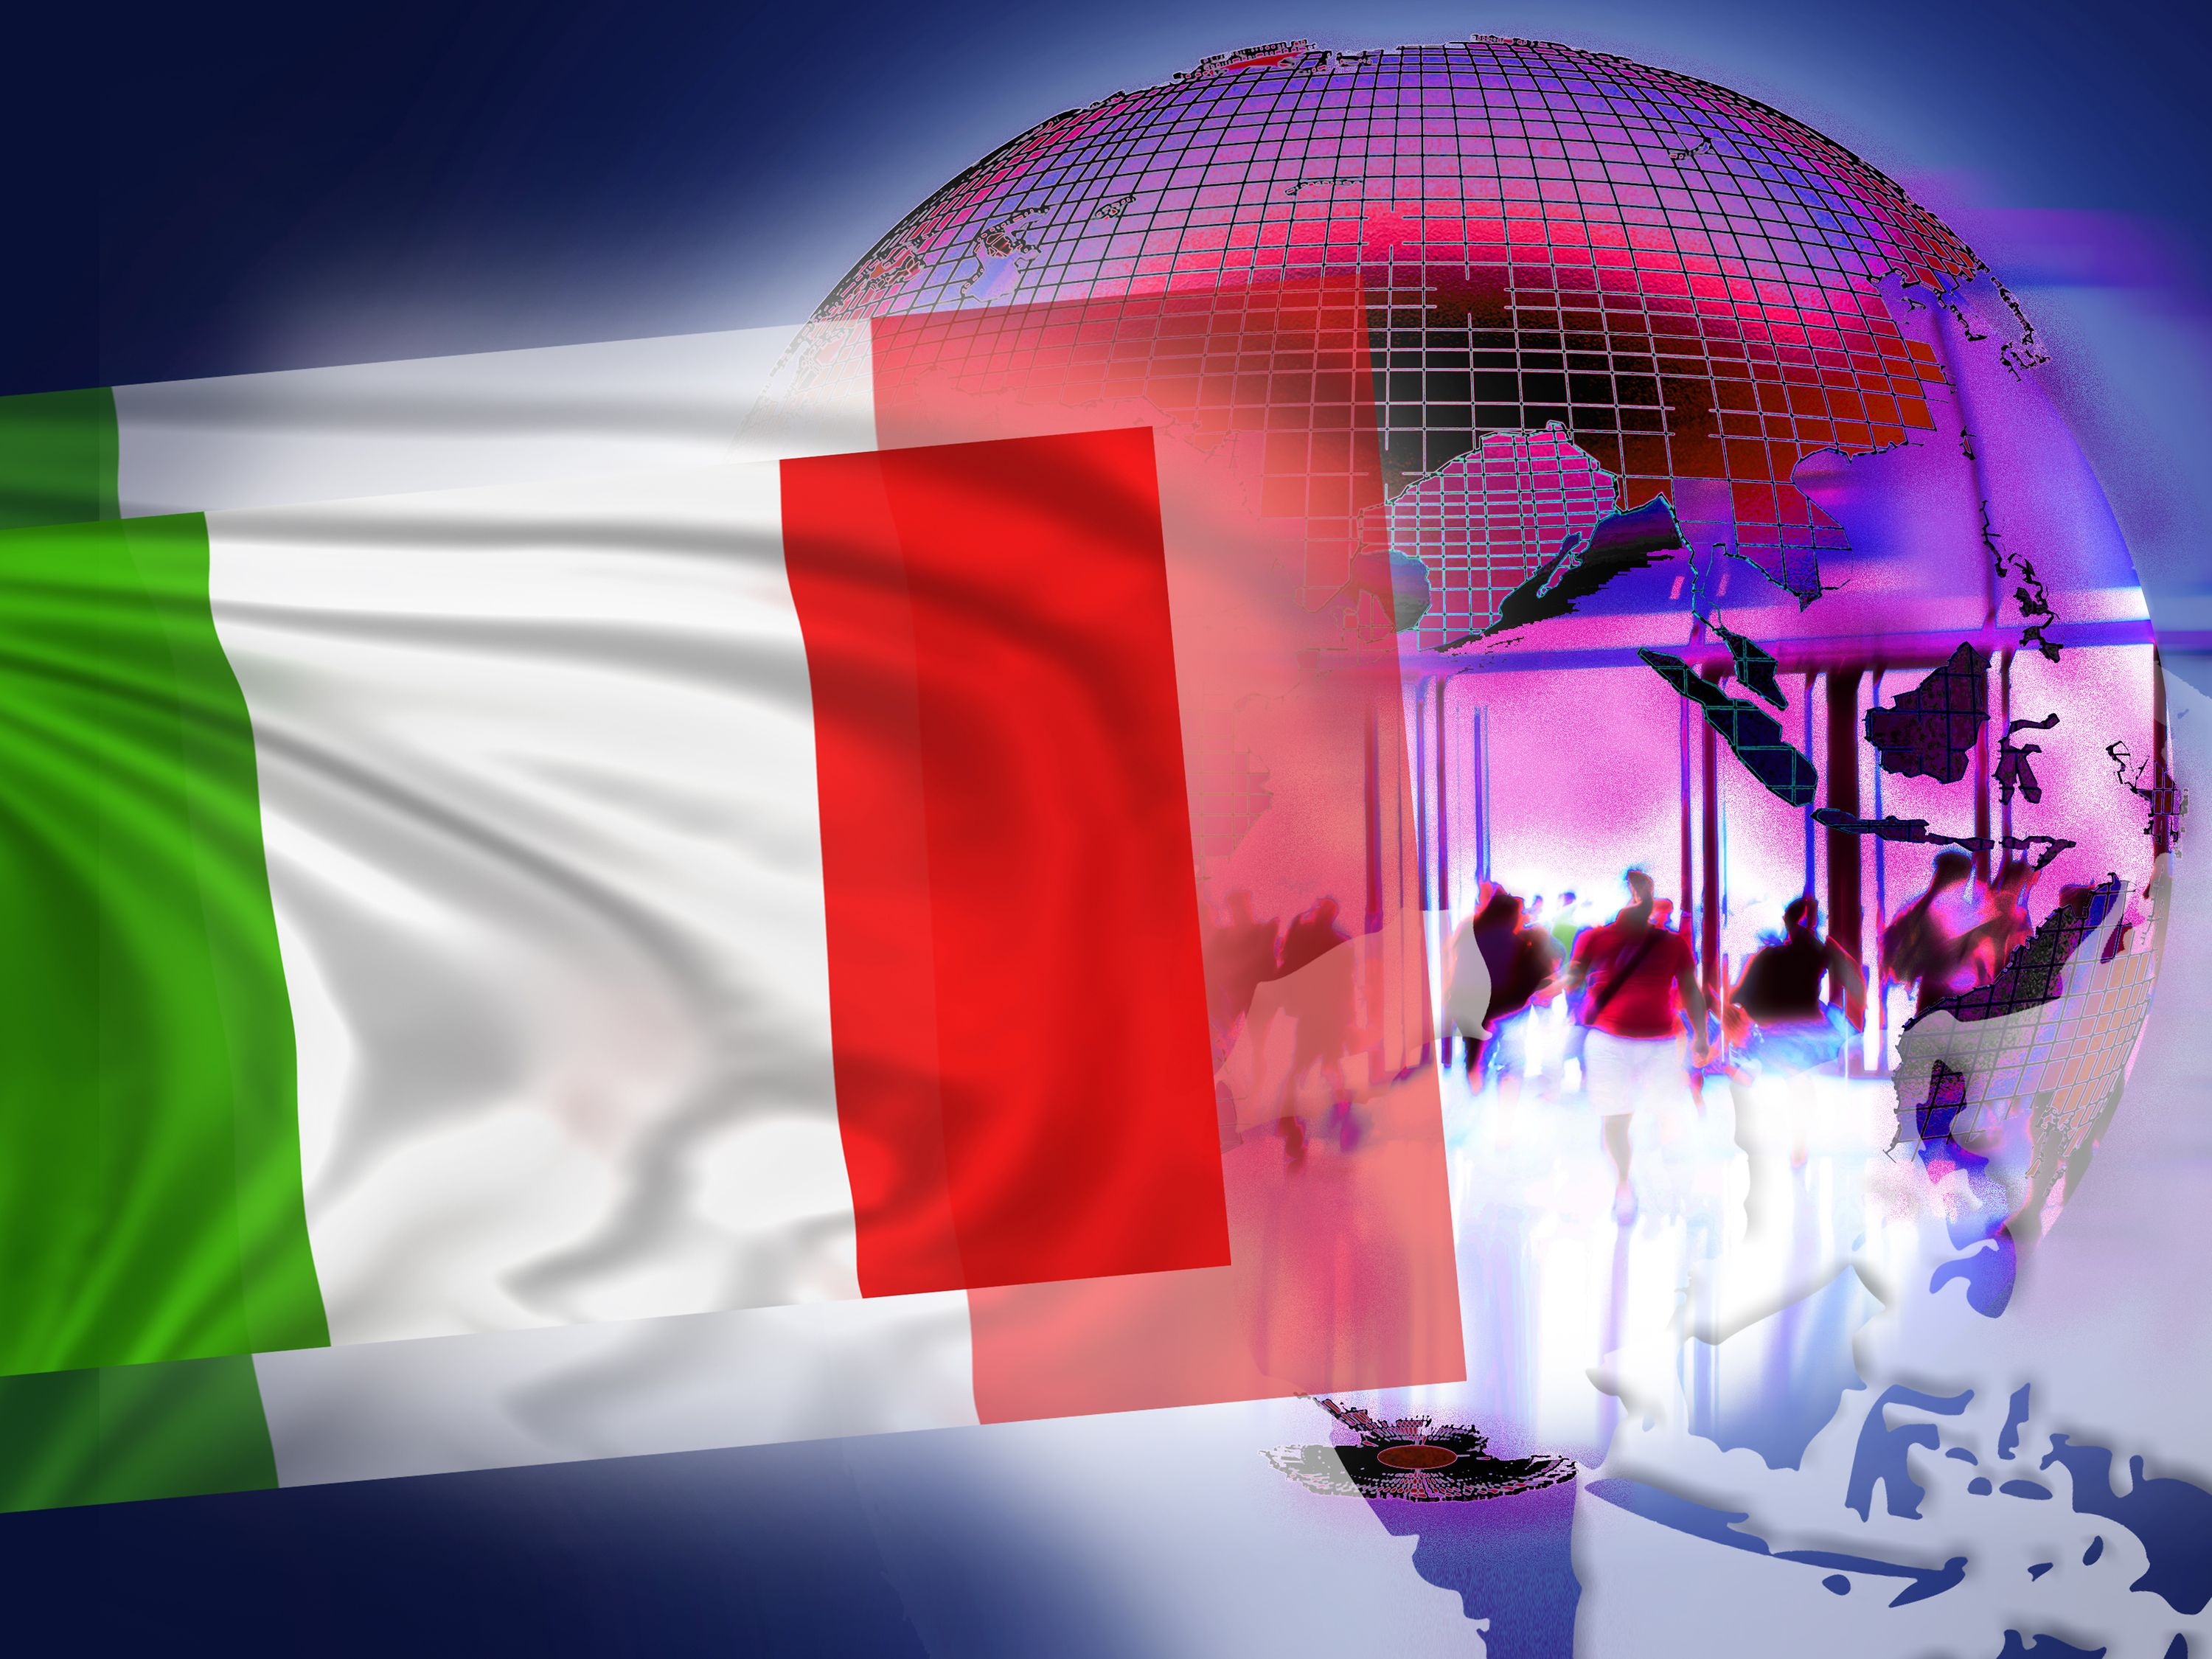 Illustration for NatCo in Italy with country flag.